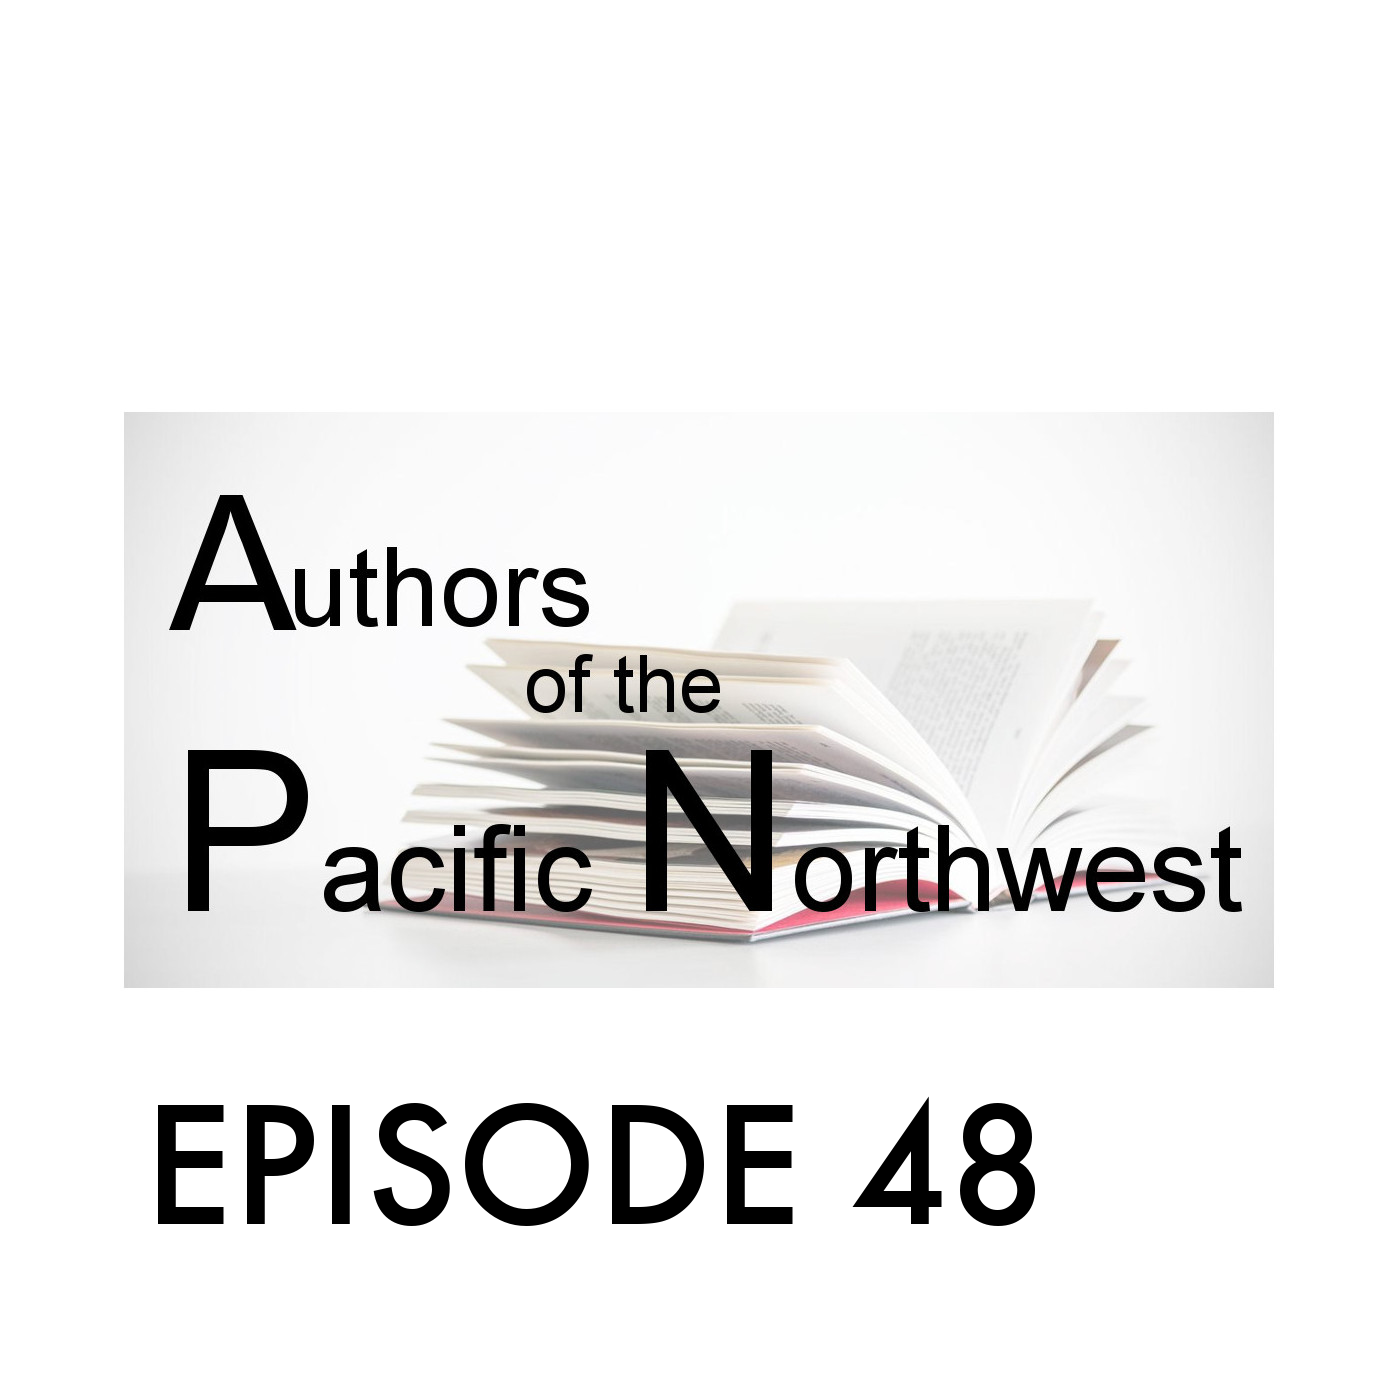 Episode 48: M. K. Martin; Post Apocalyptic Sci-Fi Author from Not a Pipe Publishing